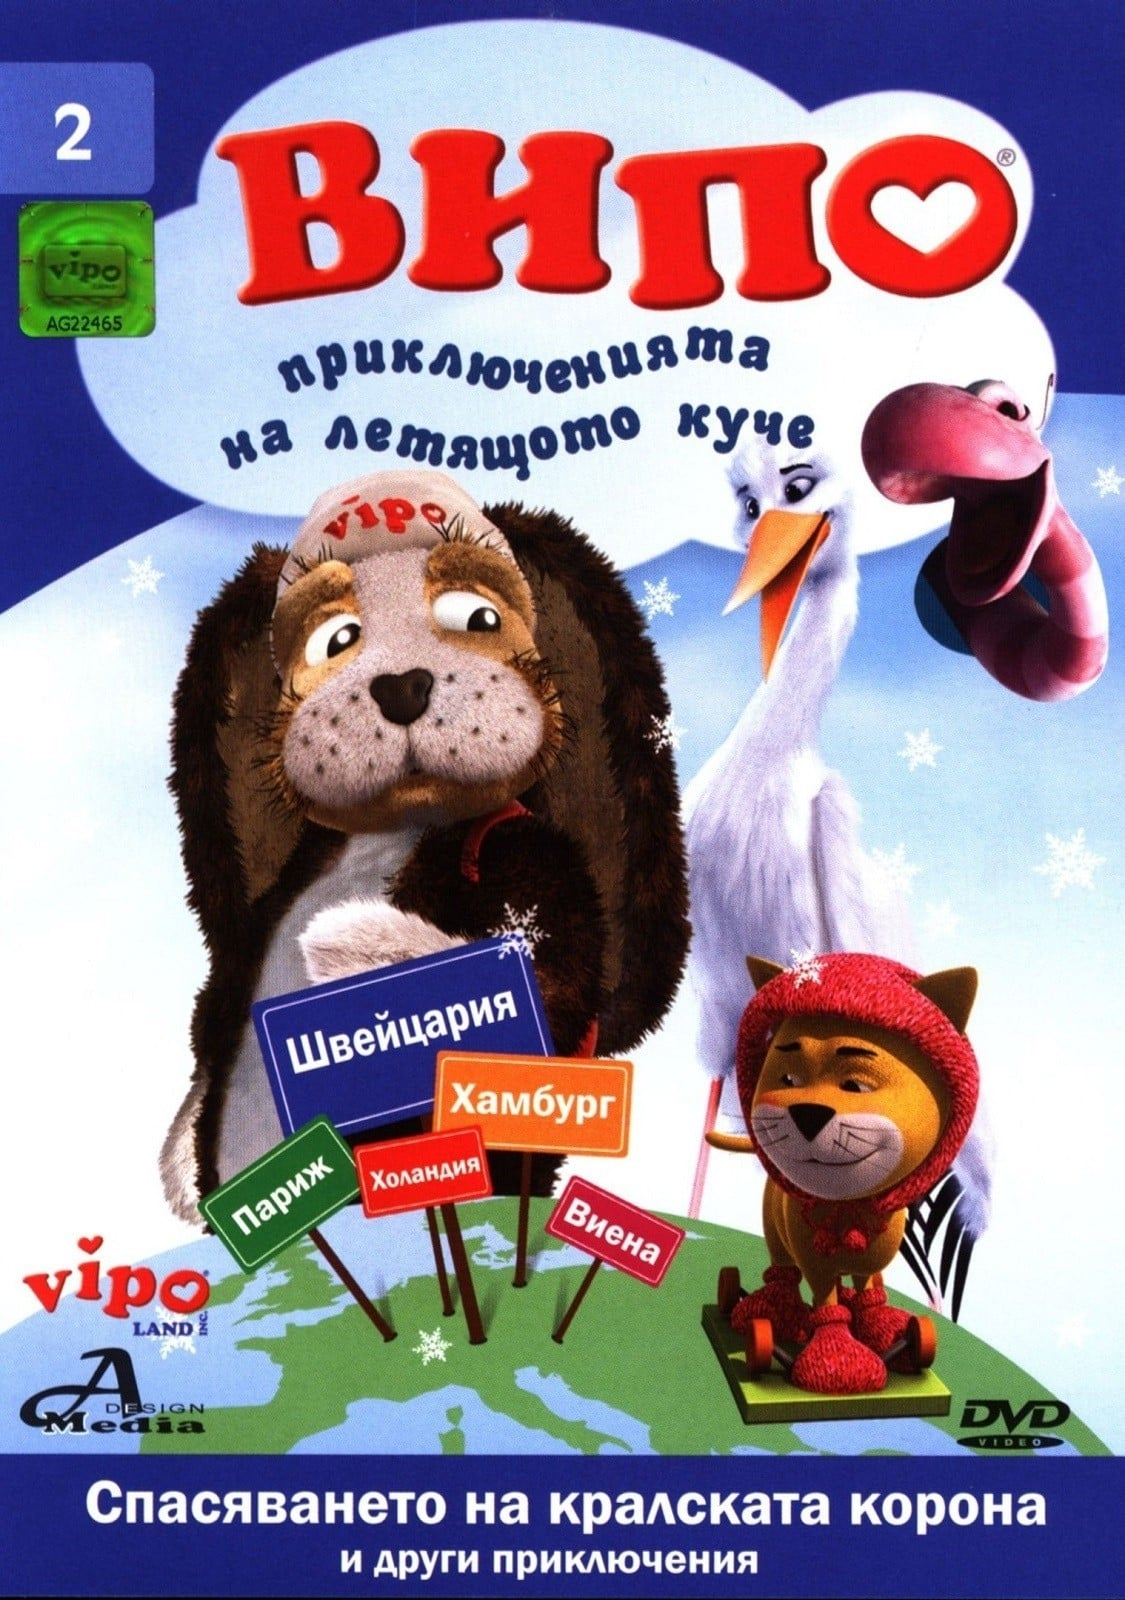 Vipo: Adventures of the Flying Dog (1970)